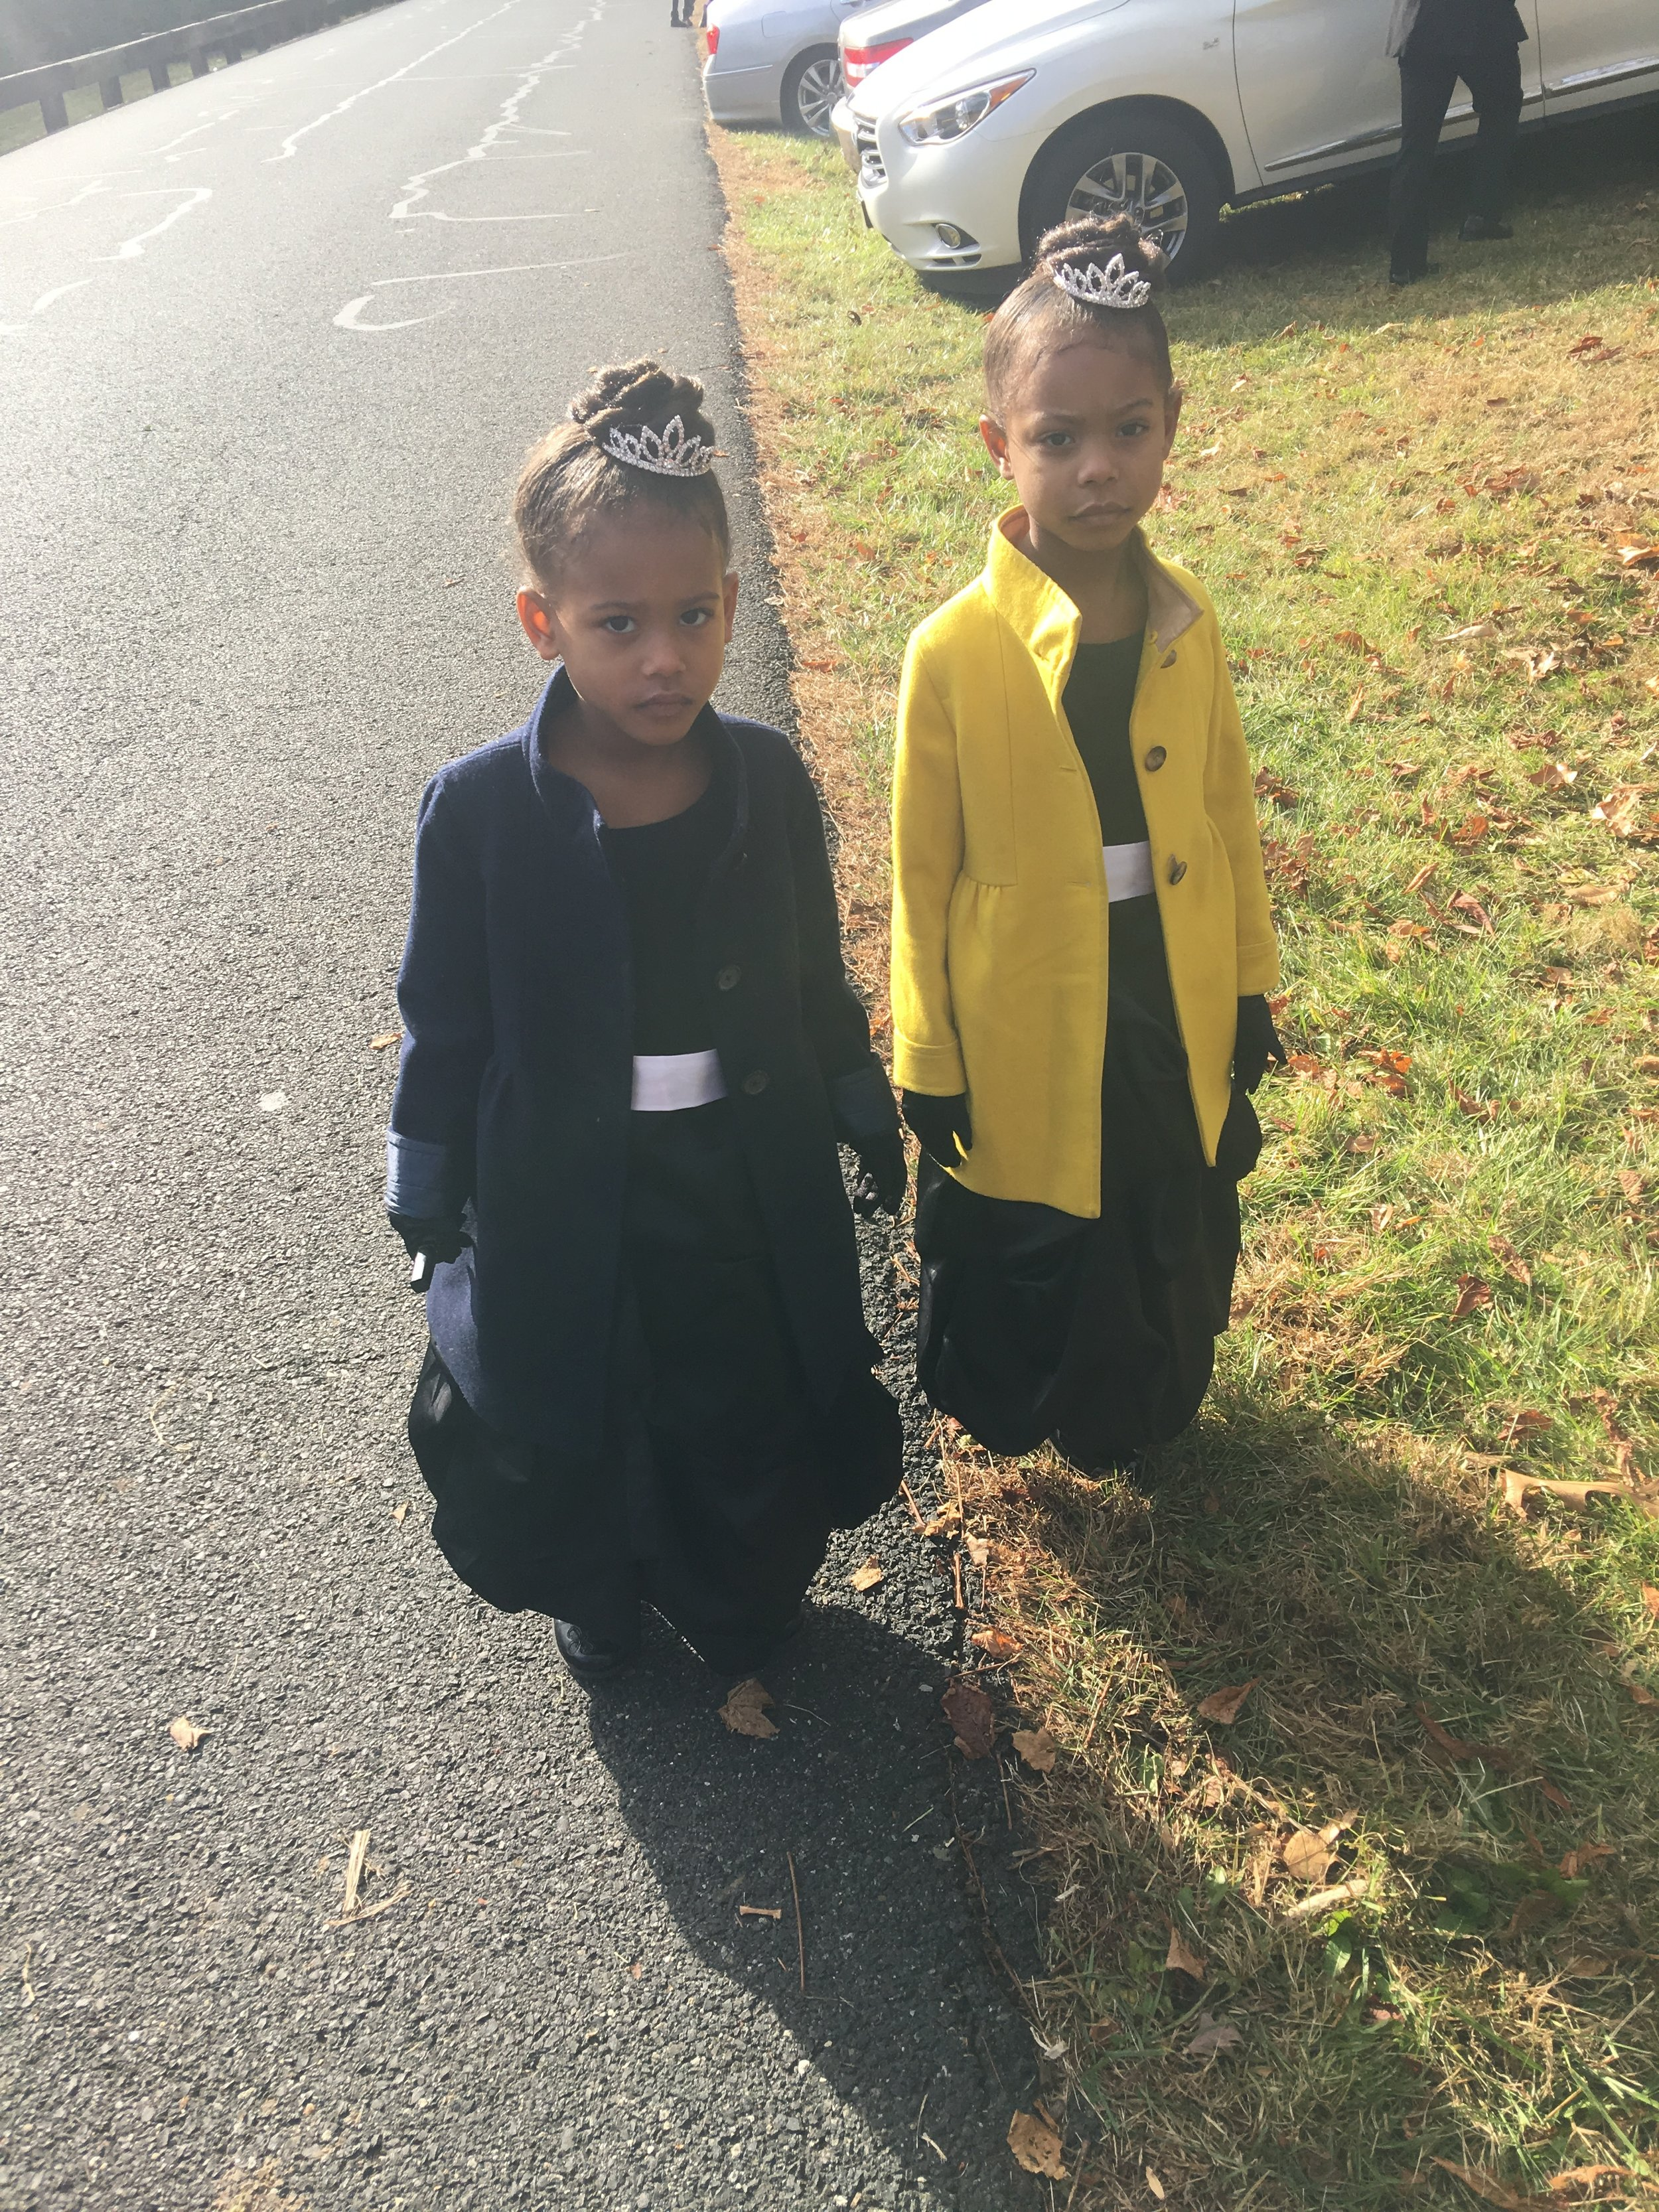 The girls in their CrewCuts winter coats